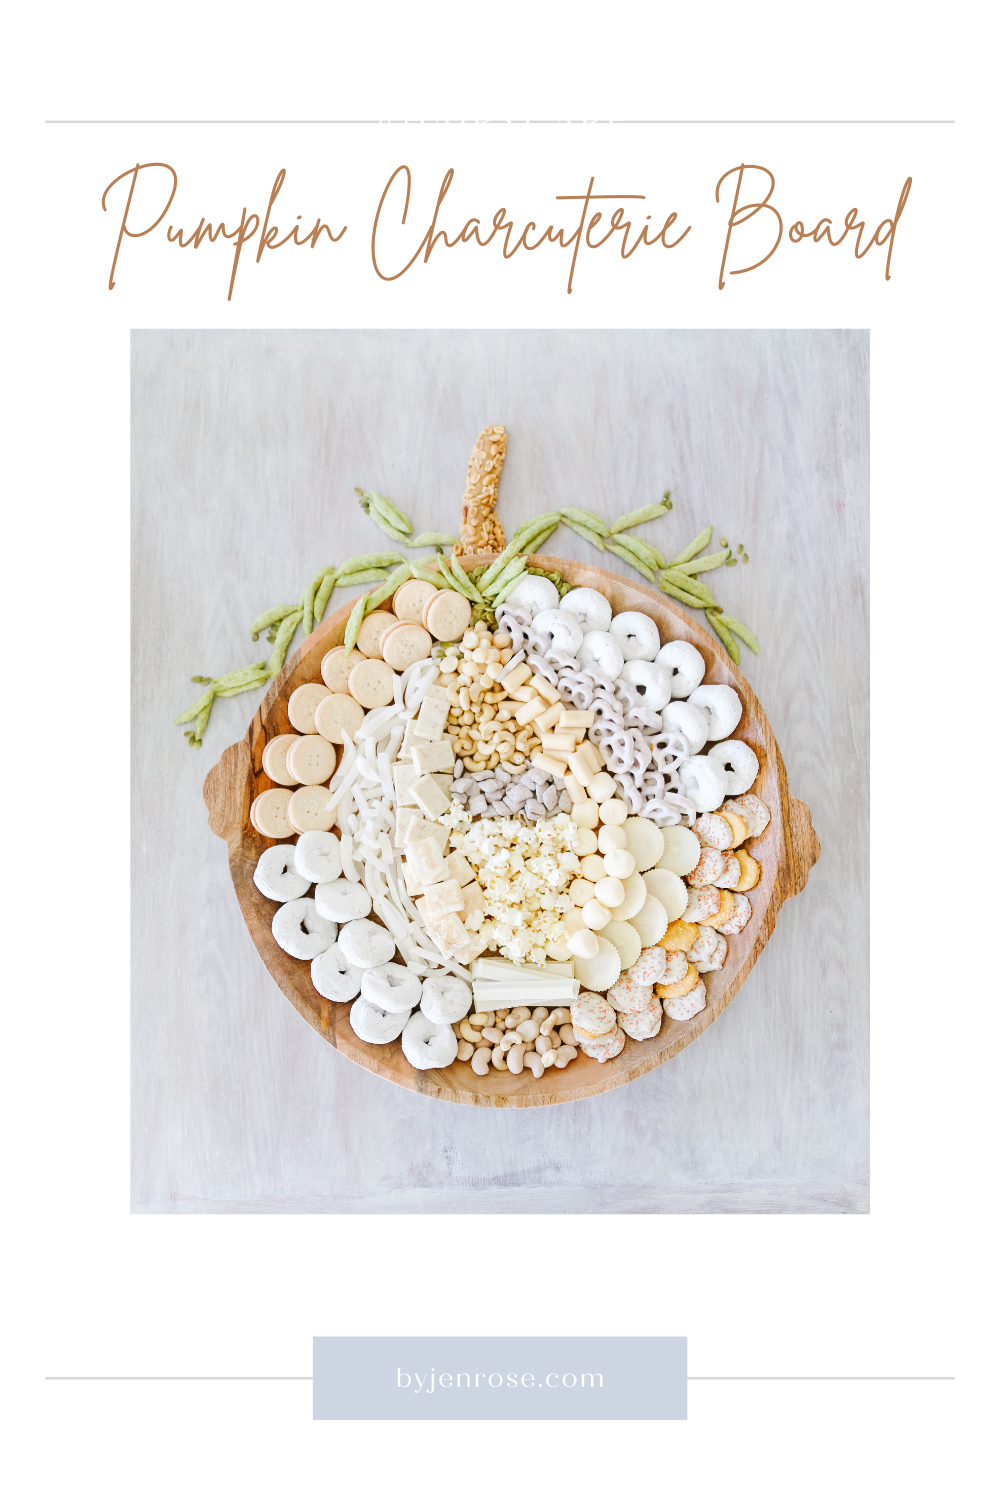 How to Make a DIY Pumpkin Snack Board featured by Utah lifestyle blogger, By Jen Rose